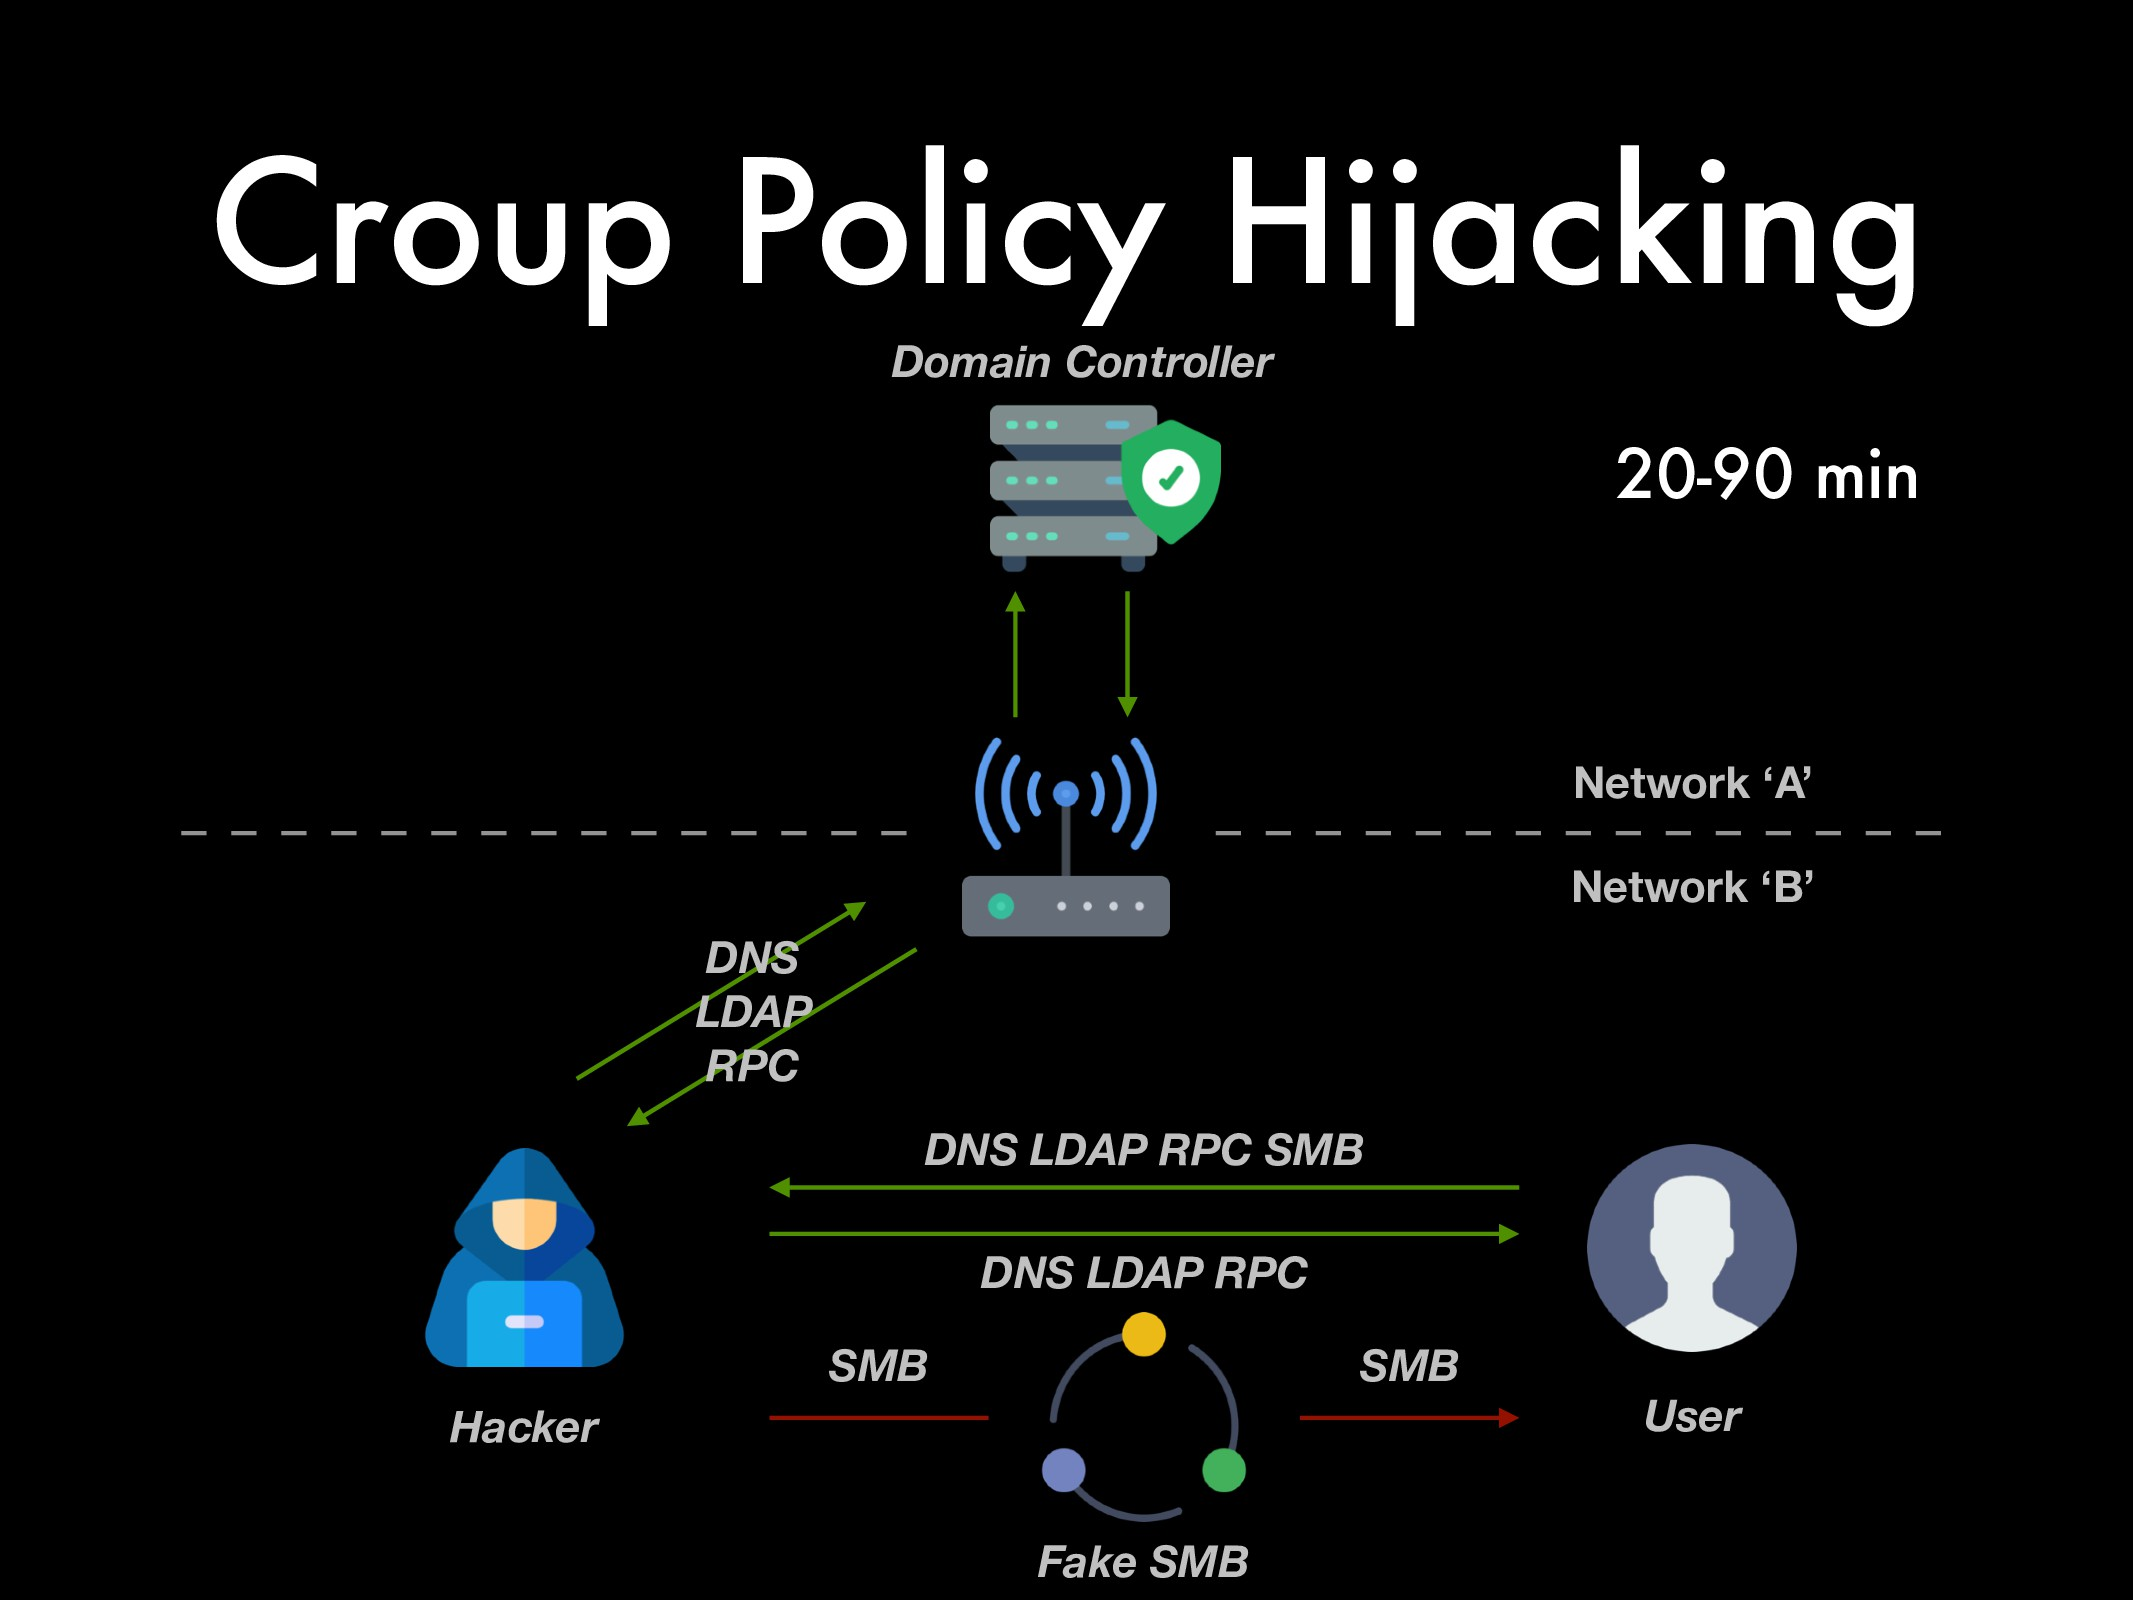 Croup Policy Hijacking Hacker Network 'A' User ...